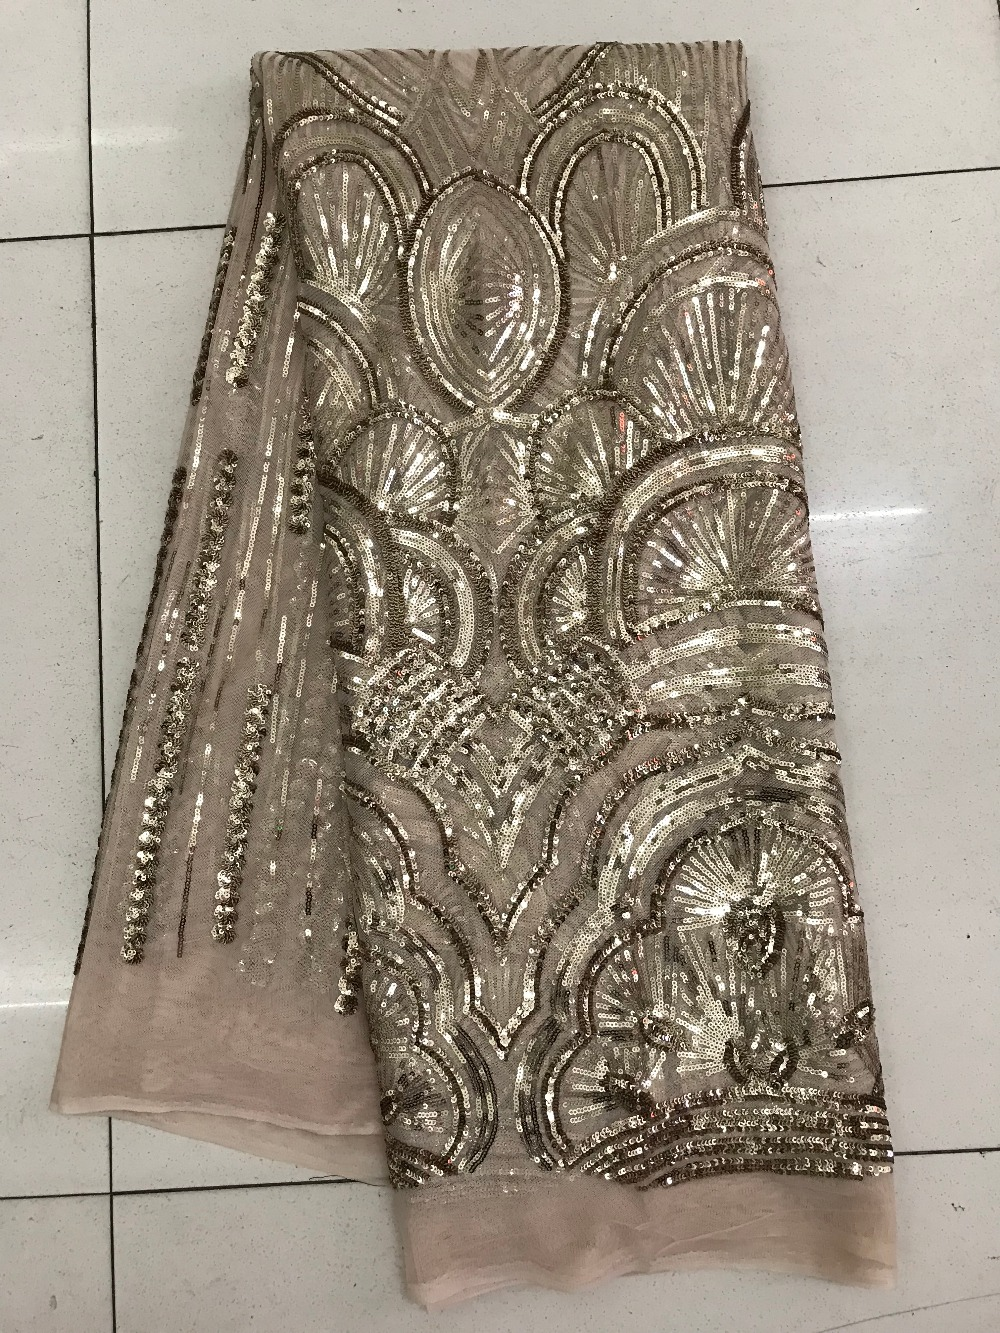 2018 Popular Design 5 Yards French Lace Fabric With Lot of Sequin Nigerian Design African Lace Fabric For Wedding Dress/Garment2018 Popular Design 5 Yards French Lace Fabric With Lot of Sequin Nigerian Design African Lace Fabric For Wedding Dress/Garment